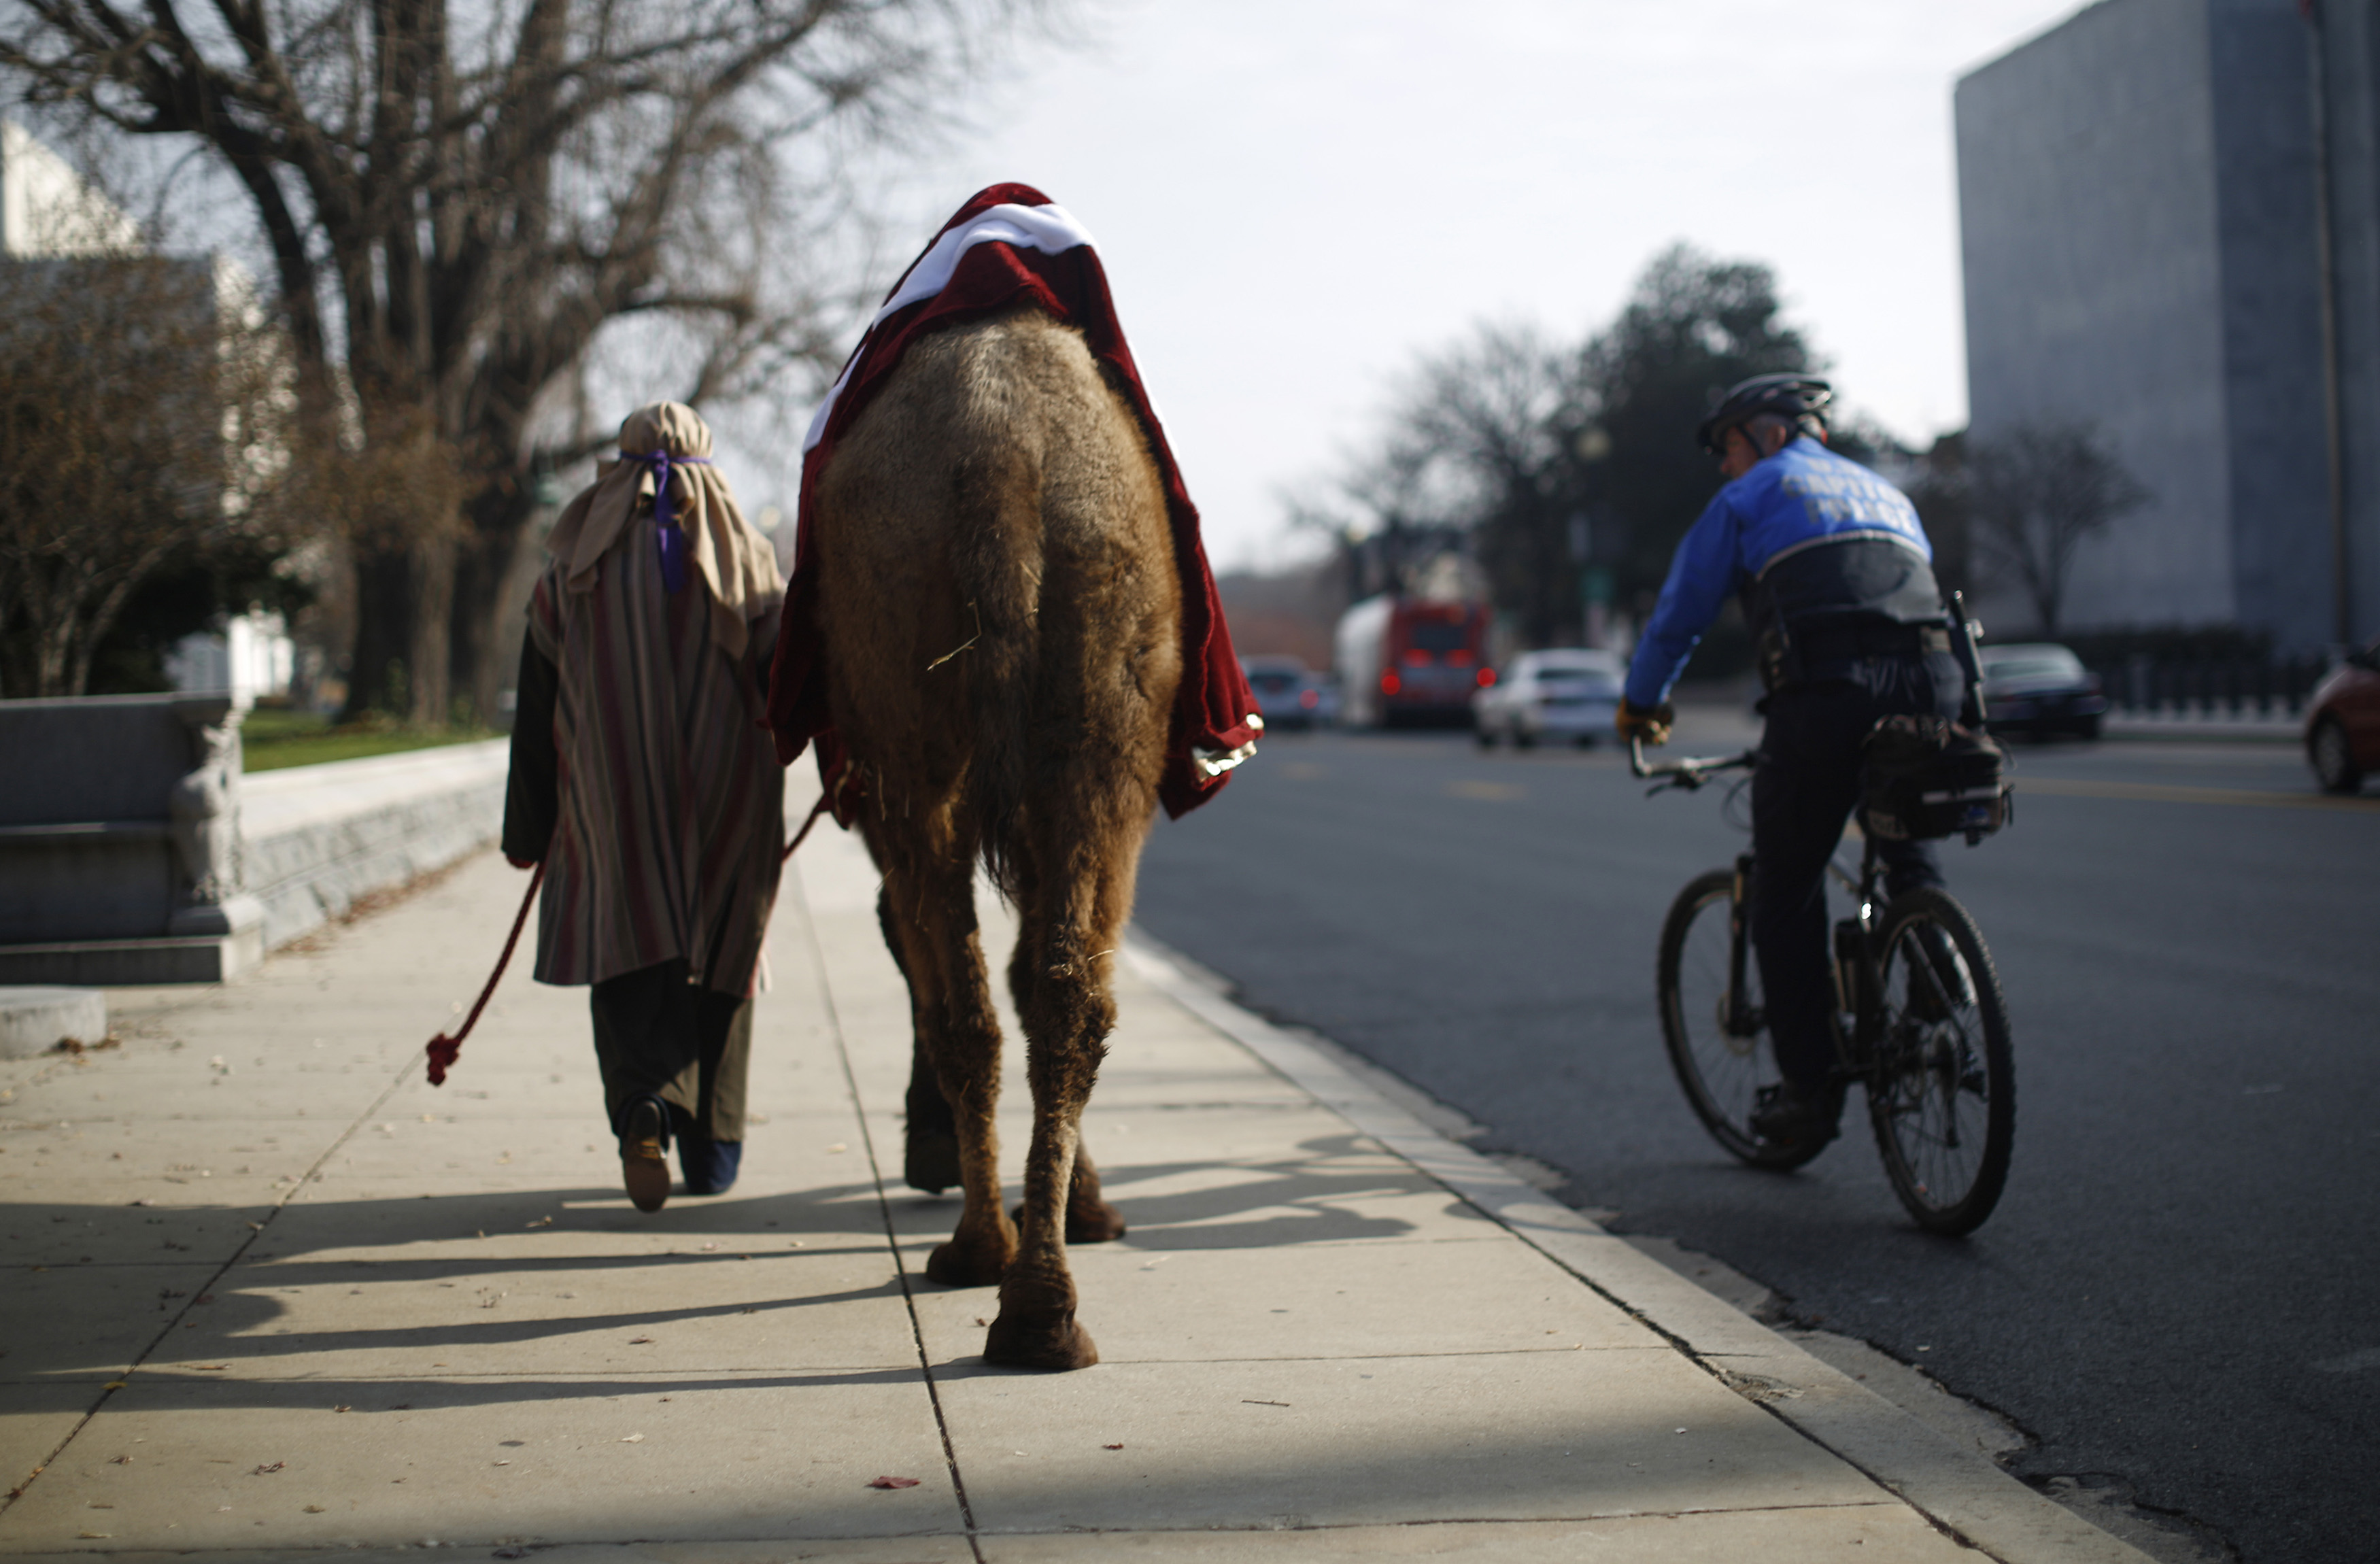 """A camel, part of a nativity scene procession, and its handler are escorted by a bicycle policeman past the U.S. Library of Congress in Washington December 3, 2013. The religious group """"Faith and Action"""" held their annual """"Live Nativity on Capitol Hill"""" on Tuesday to exercise their first amendment rights. REUTERS/Jason Reed (UNITED STATES - Tags: POLITICS RELIGION CITYSCAPE ANIMALS) - RTX162C0"""